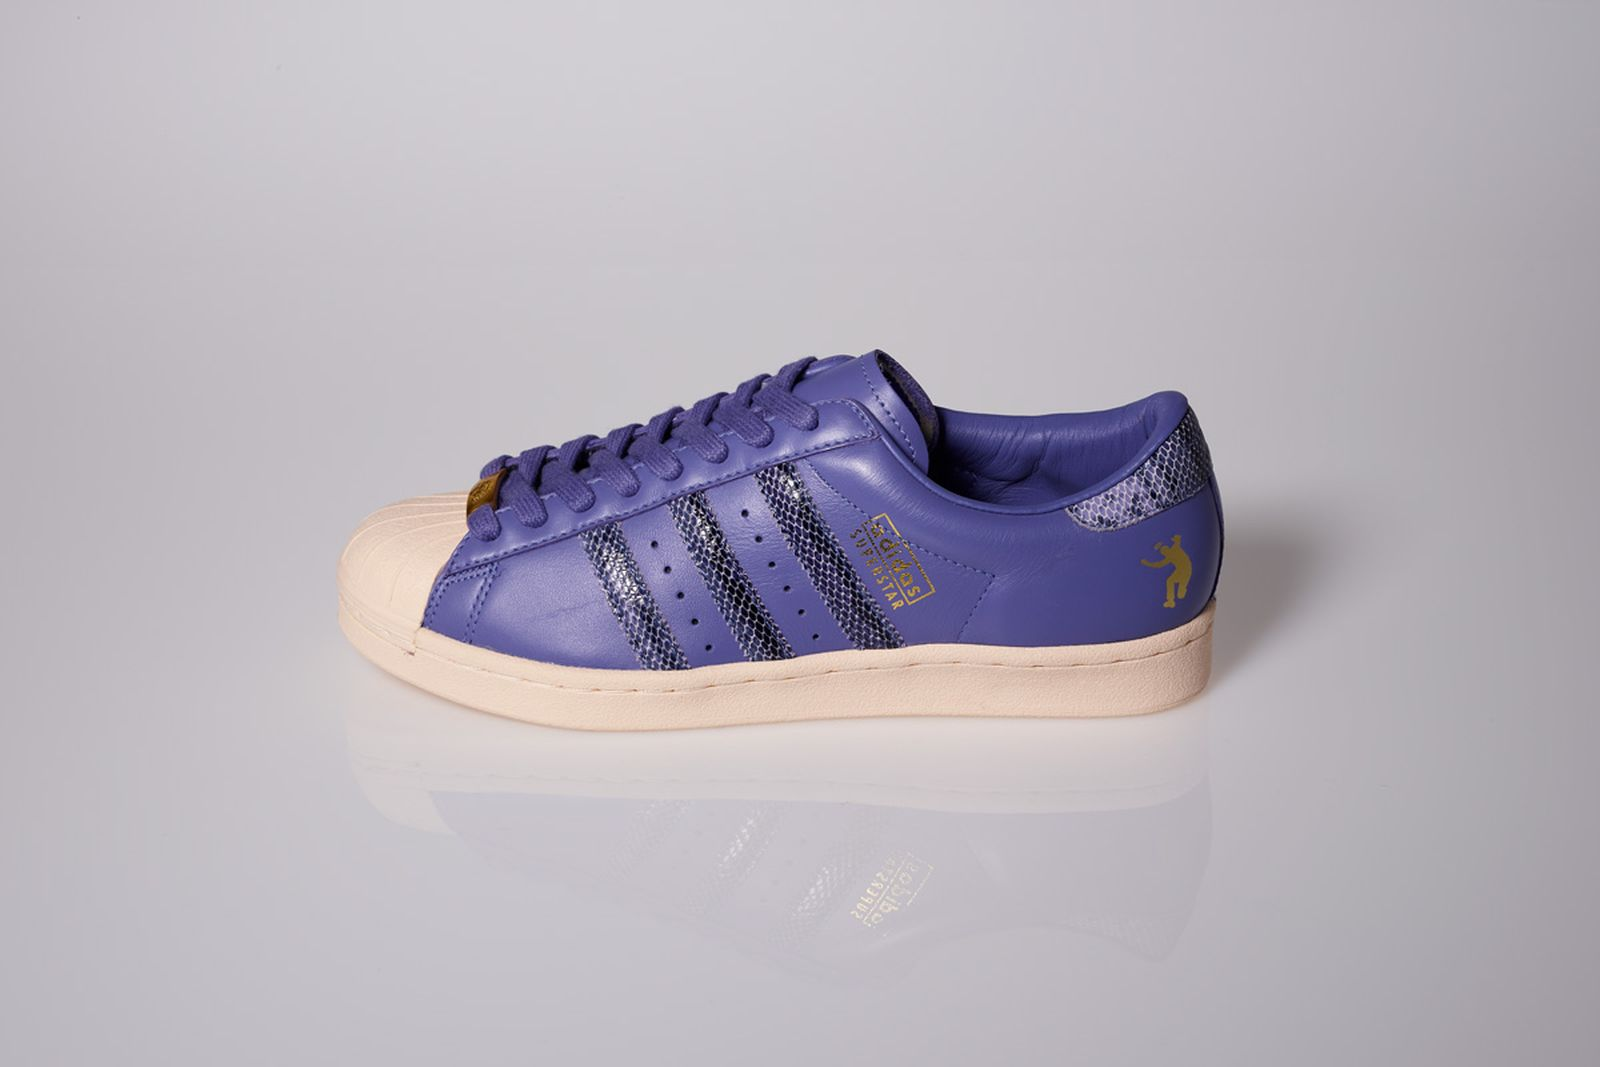 adidas-superstar-frontpage-17